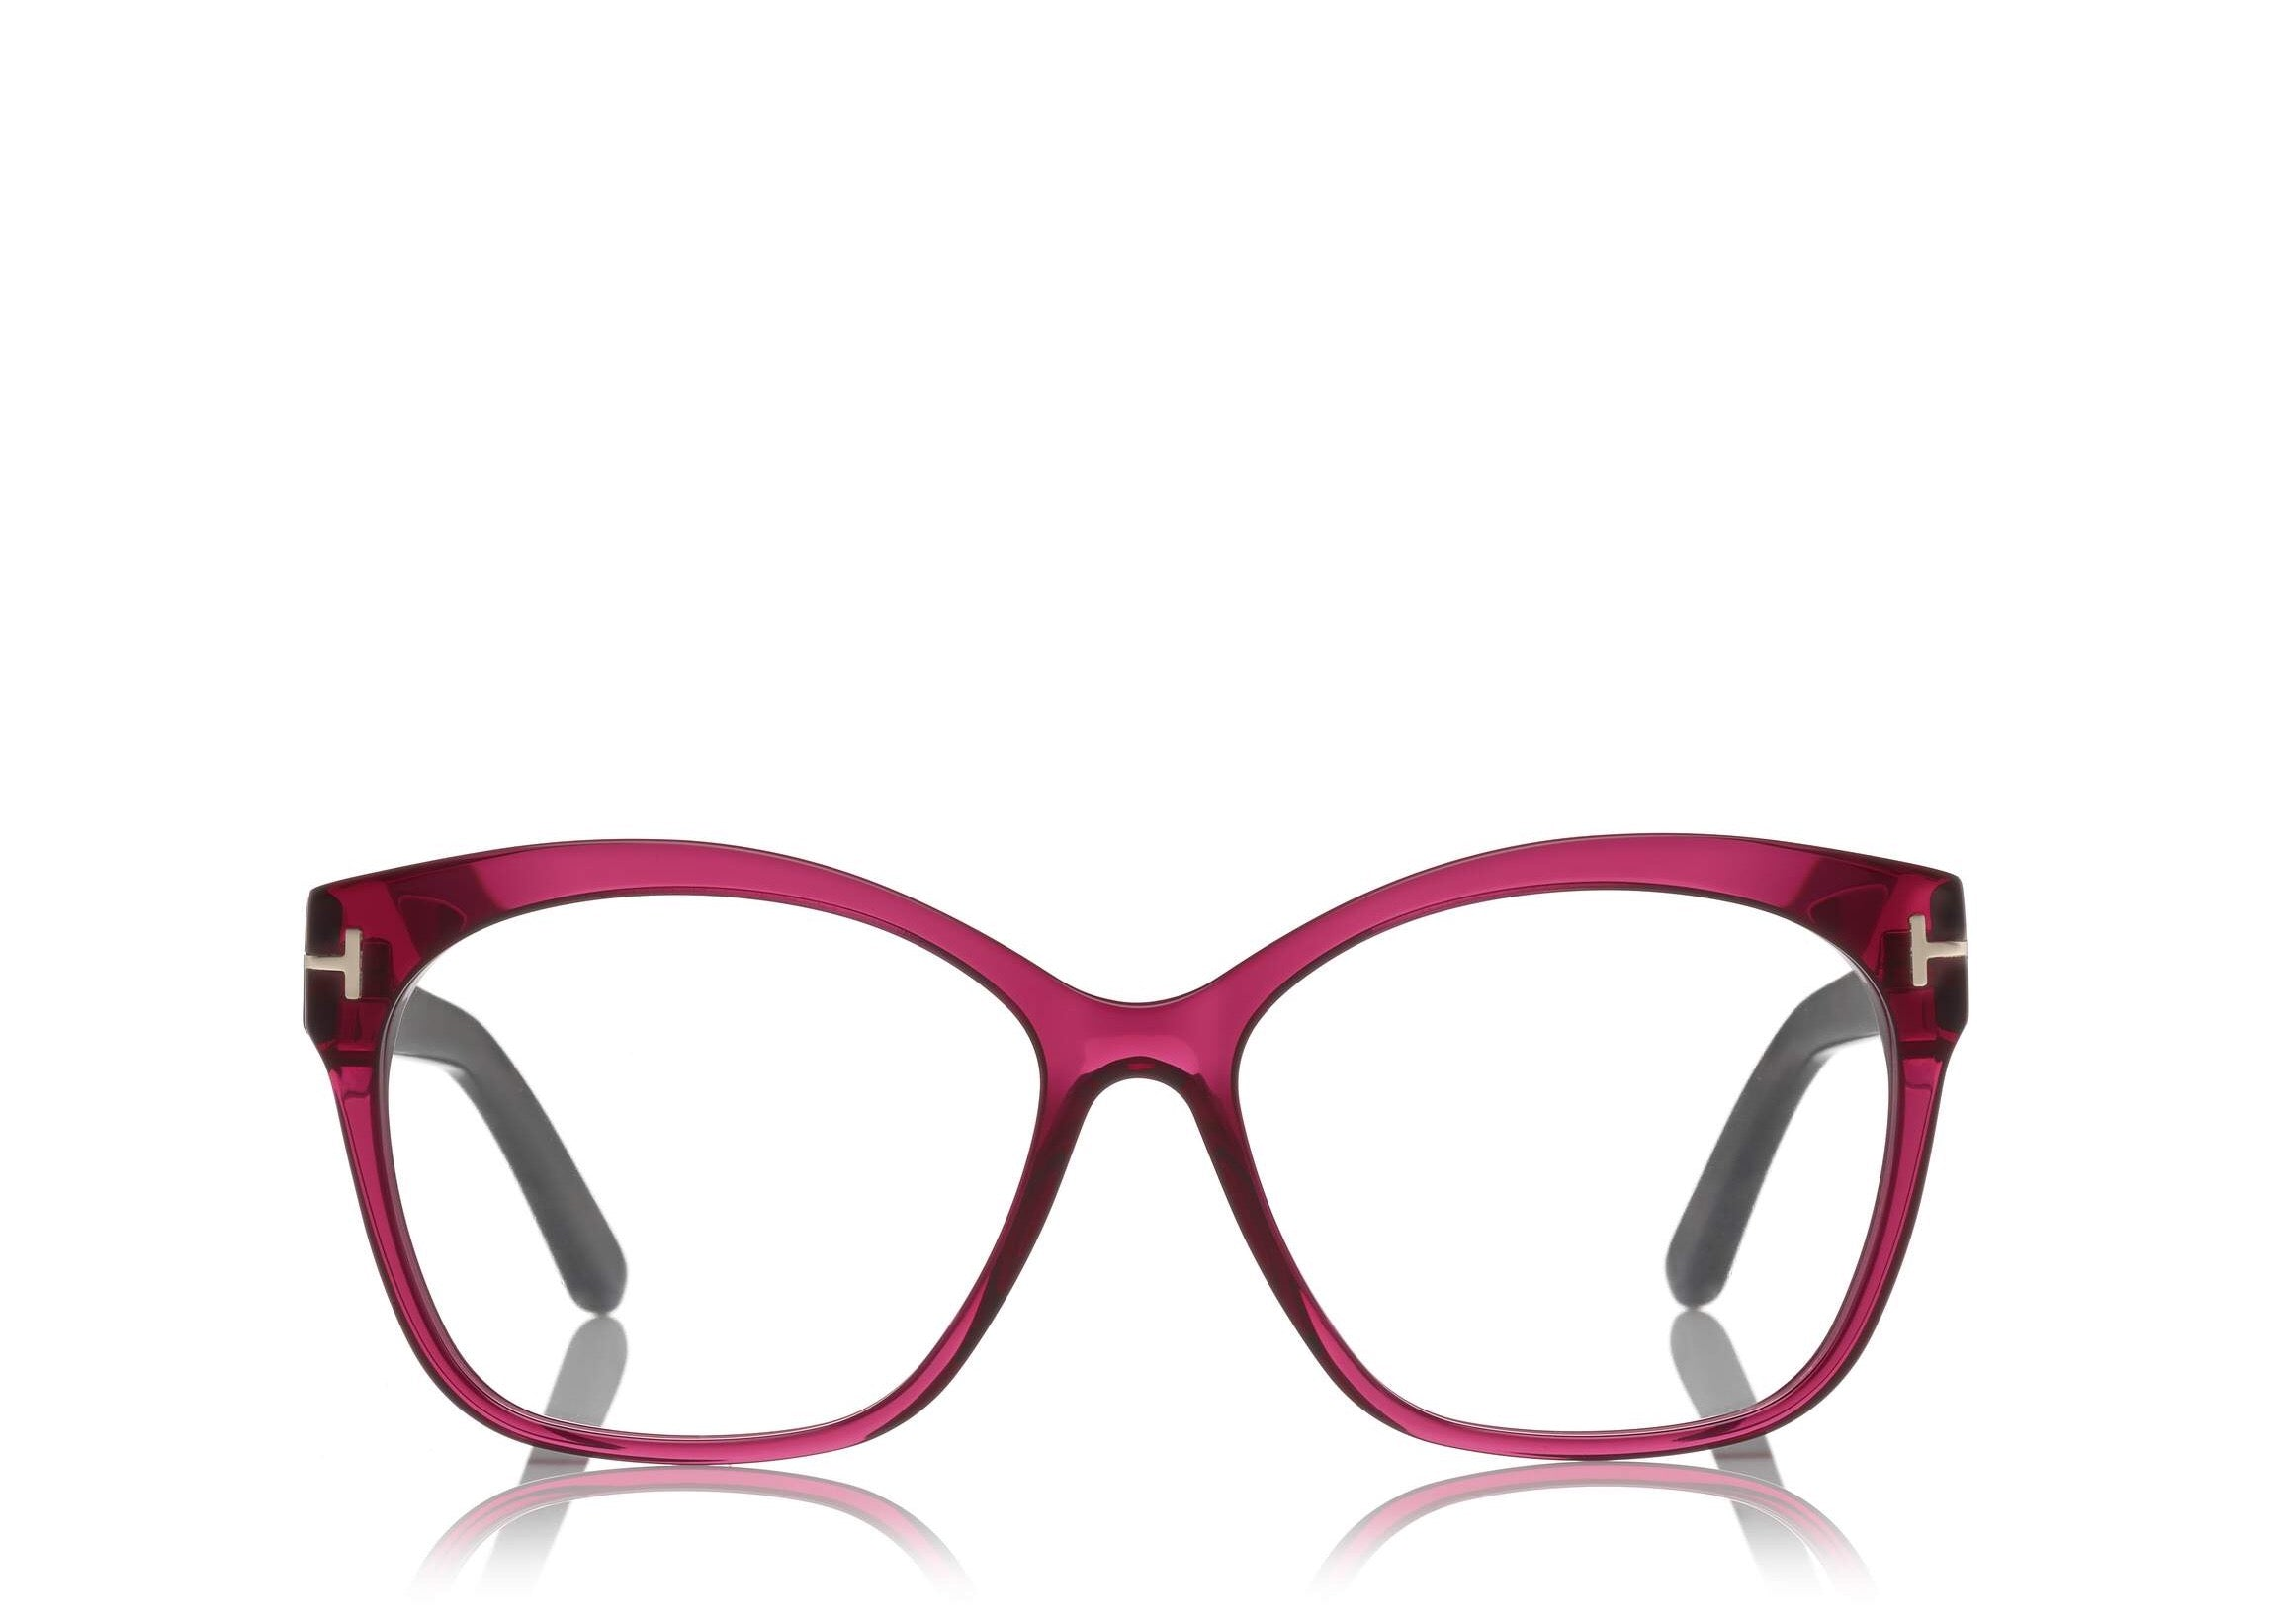 9d2c1452a806 6468981410 TOM FORD FT 5435 WOMEN'S SQUARE-FRAME OPTICAL GLASSES ...